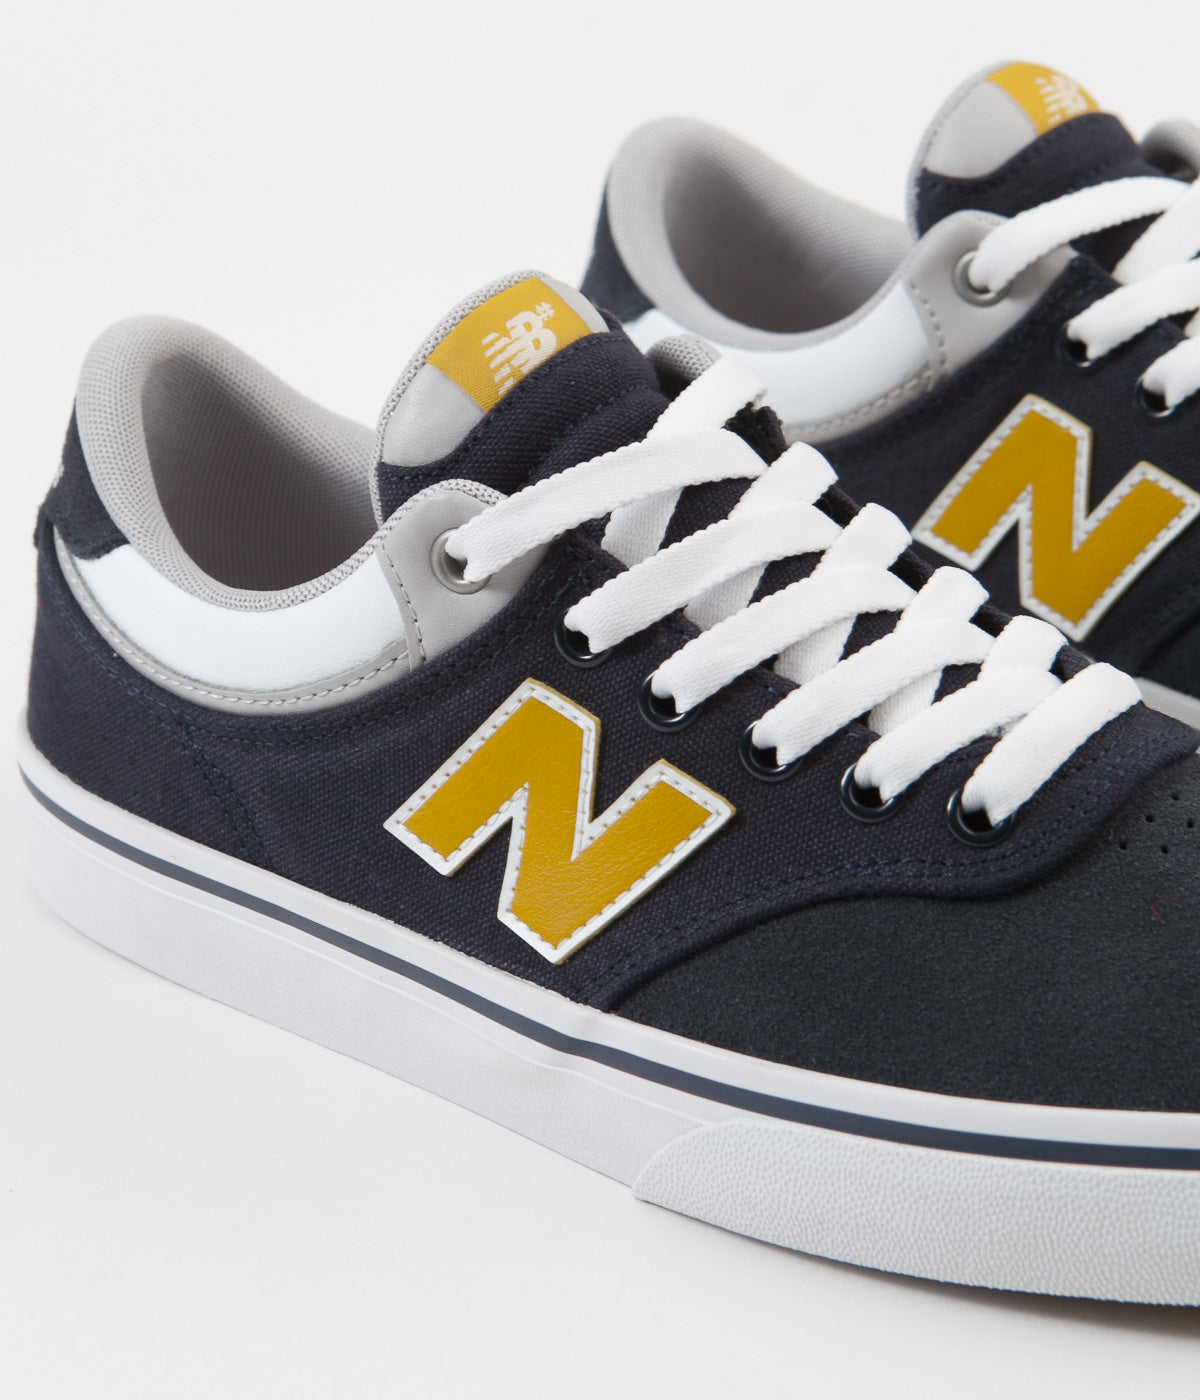 New Balance Numeric 255 Shoes - Navy / Gold